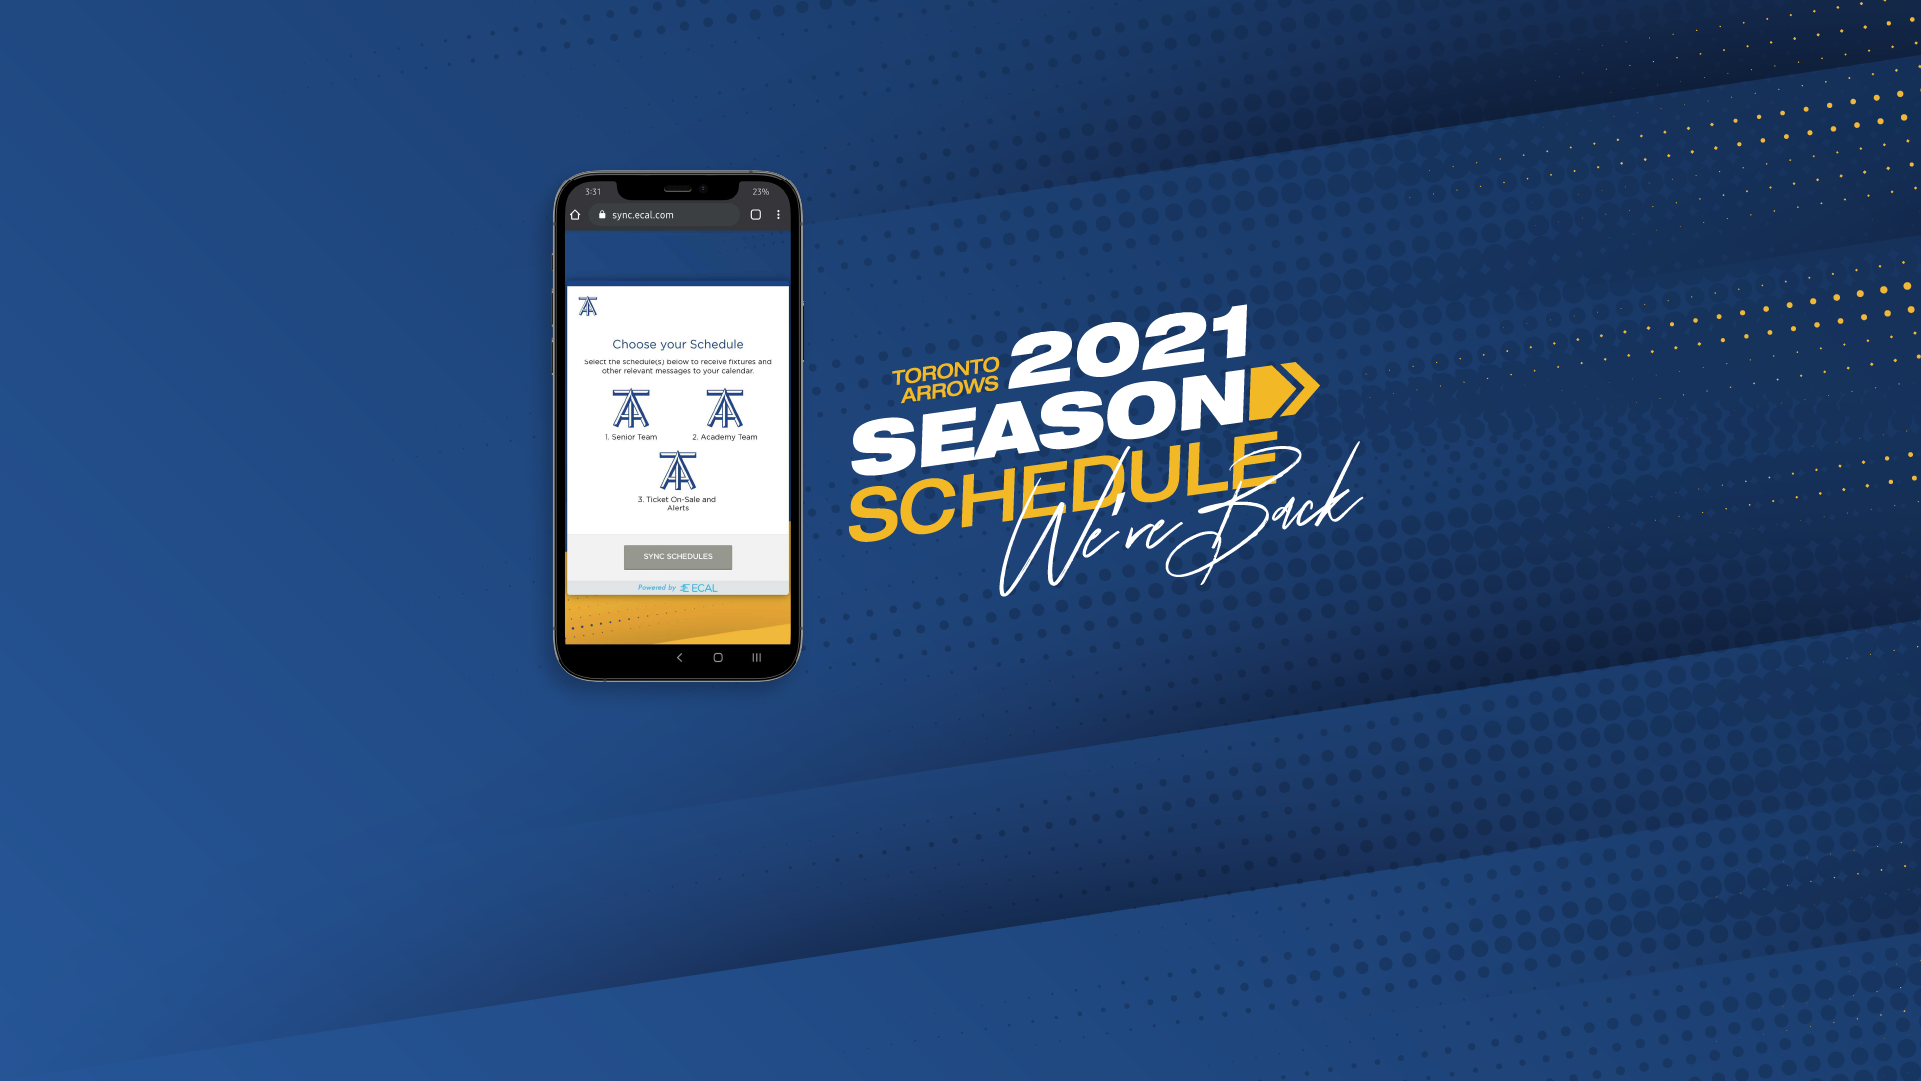 Sync our 2021 MLR Schedule Directly to your Phone